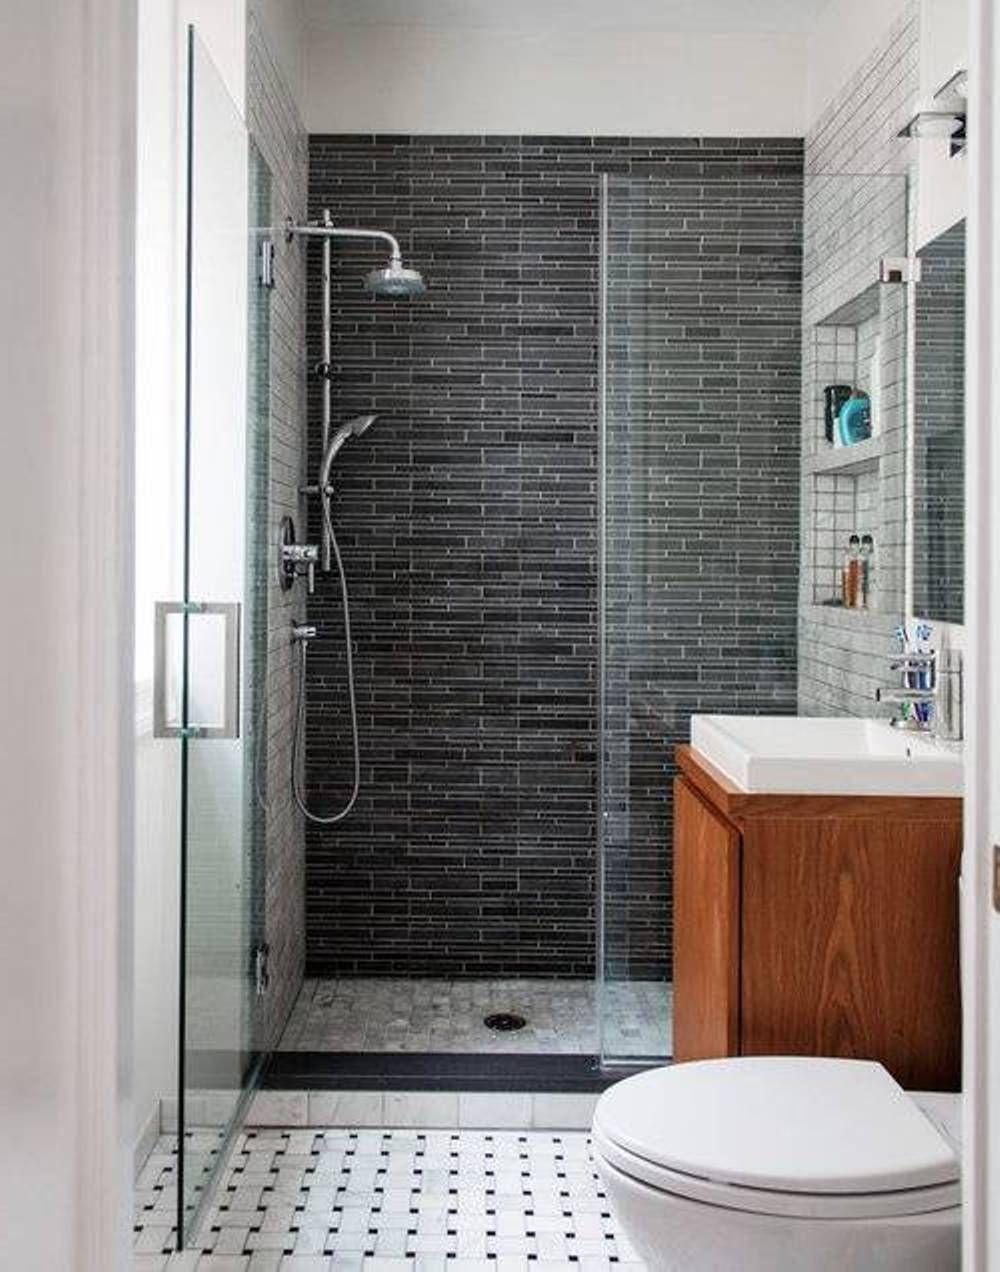 78  images about Bathroom on Pinterest   Ideas for small bathrooms  Small bathroom designs and Bathroom remodeling. 78  images about Bathroom on Pinterest   Ideas for small bathrooms